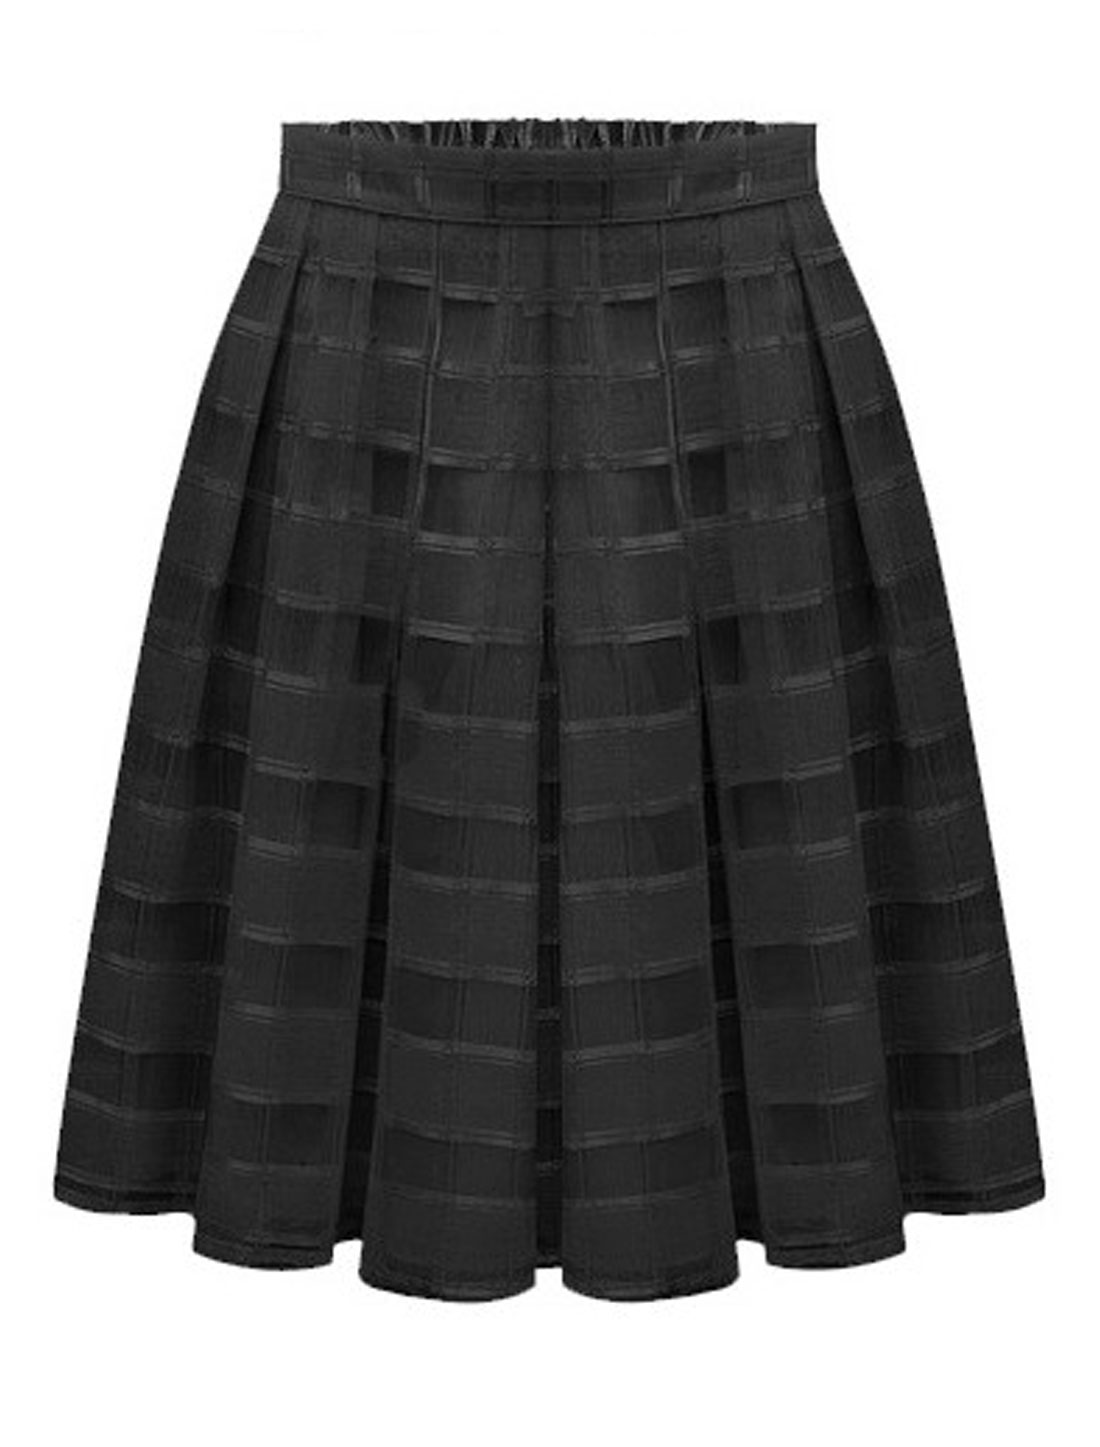 Women Mid Rise Elastic Waist Fully Lined Casual Organza Skirts Black S